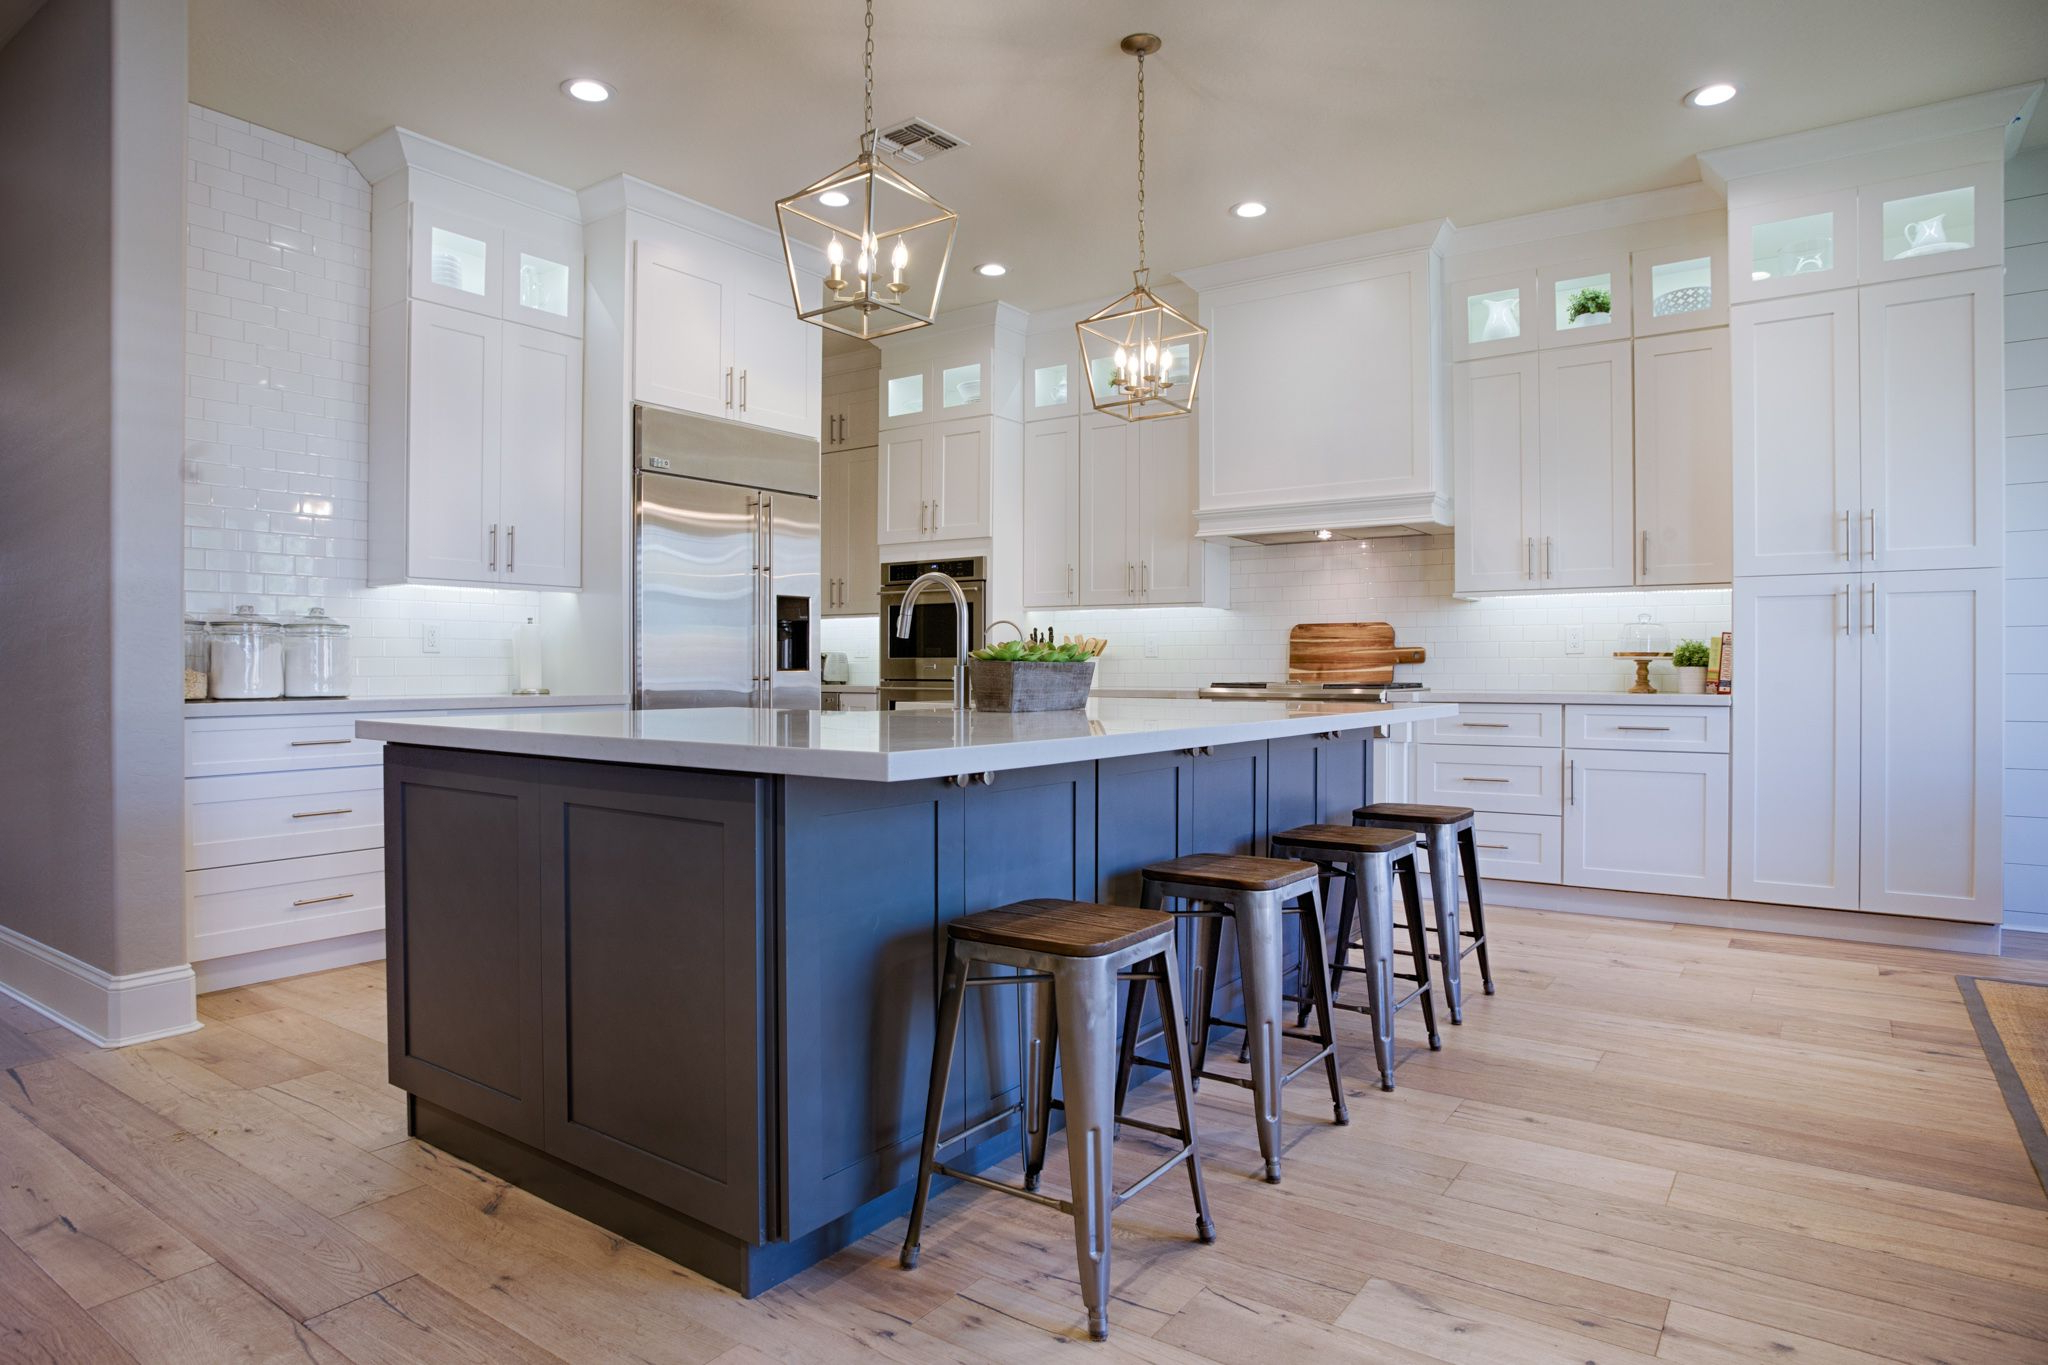 White Newport Shaker Kitchen Cabinets In Frost Paint With